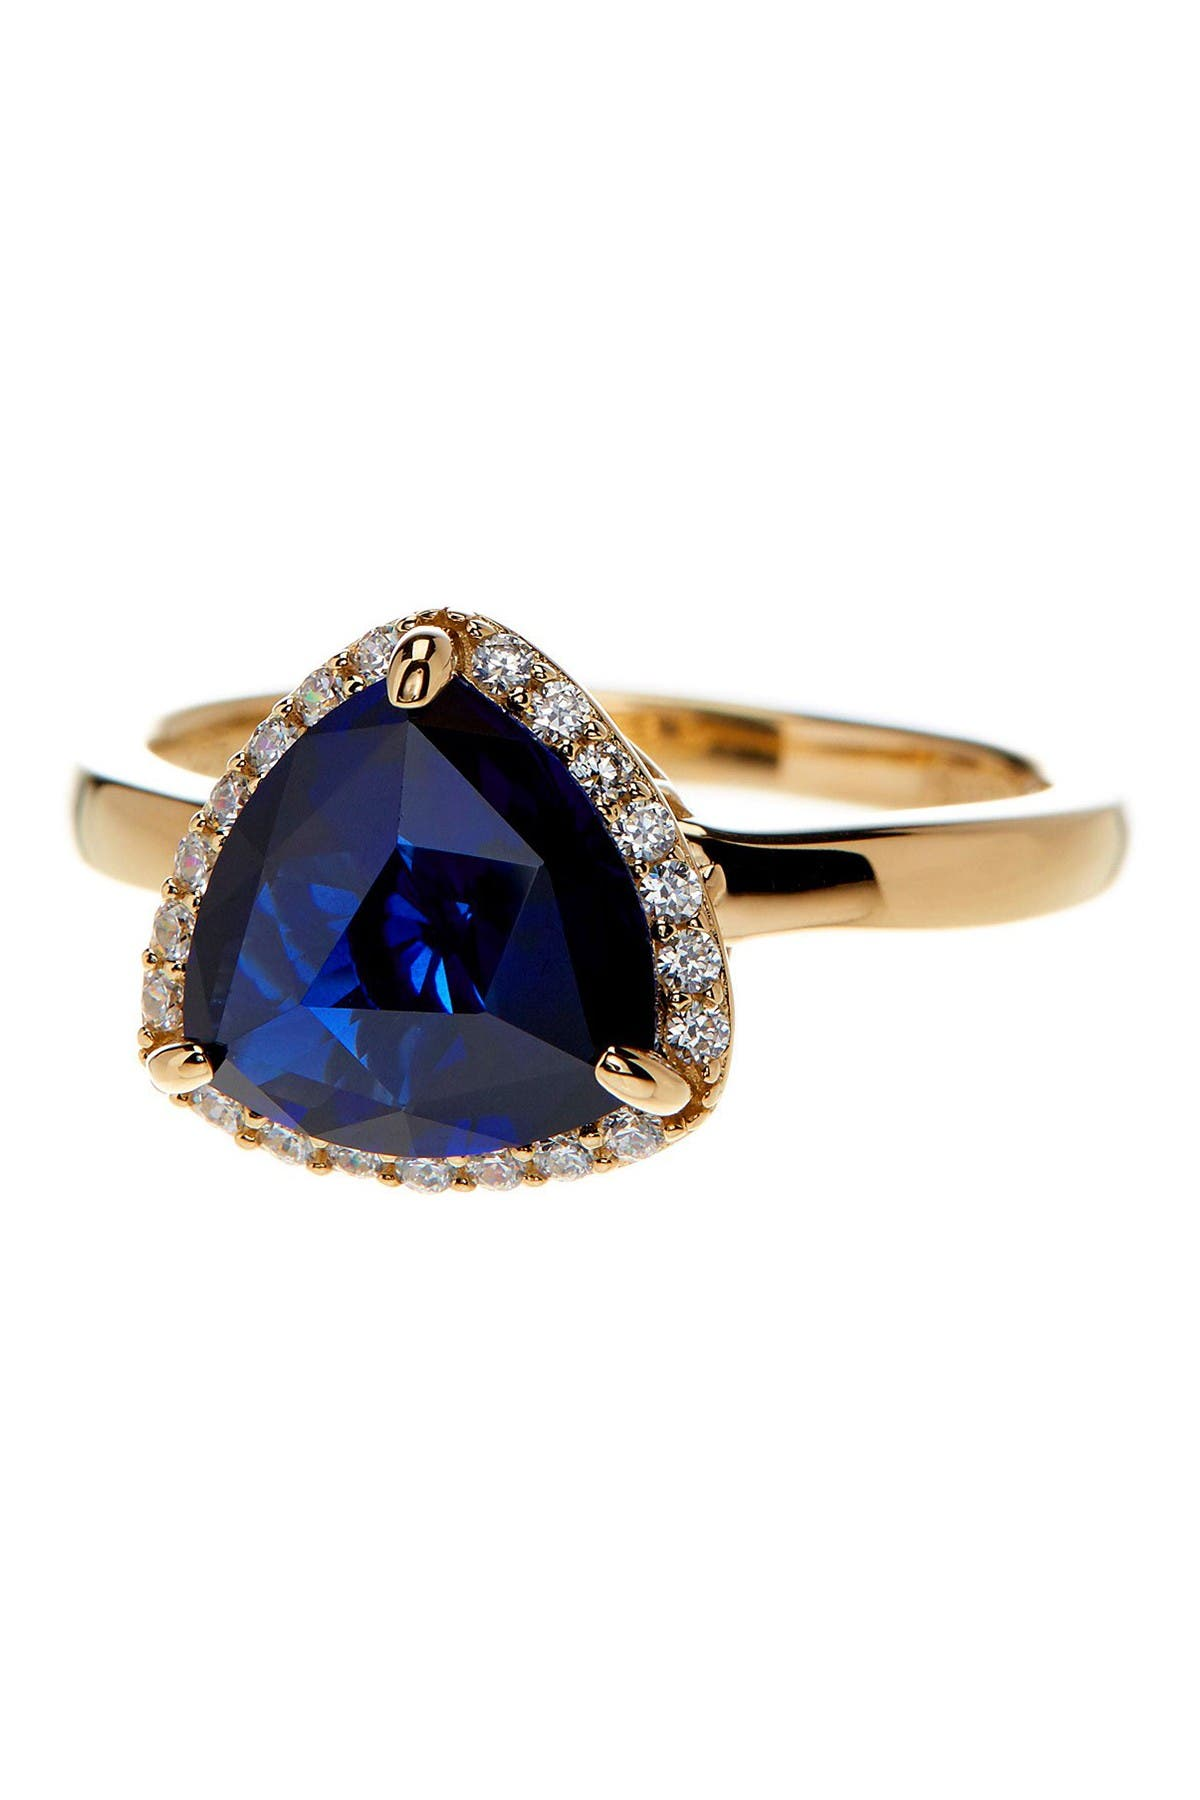 Image of Suzy Levian Gold Tone Sterling Silver Created Sapphire Ring